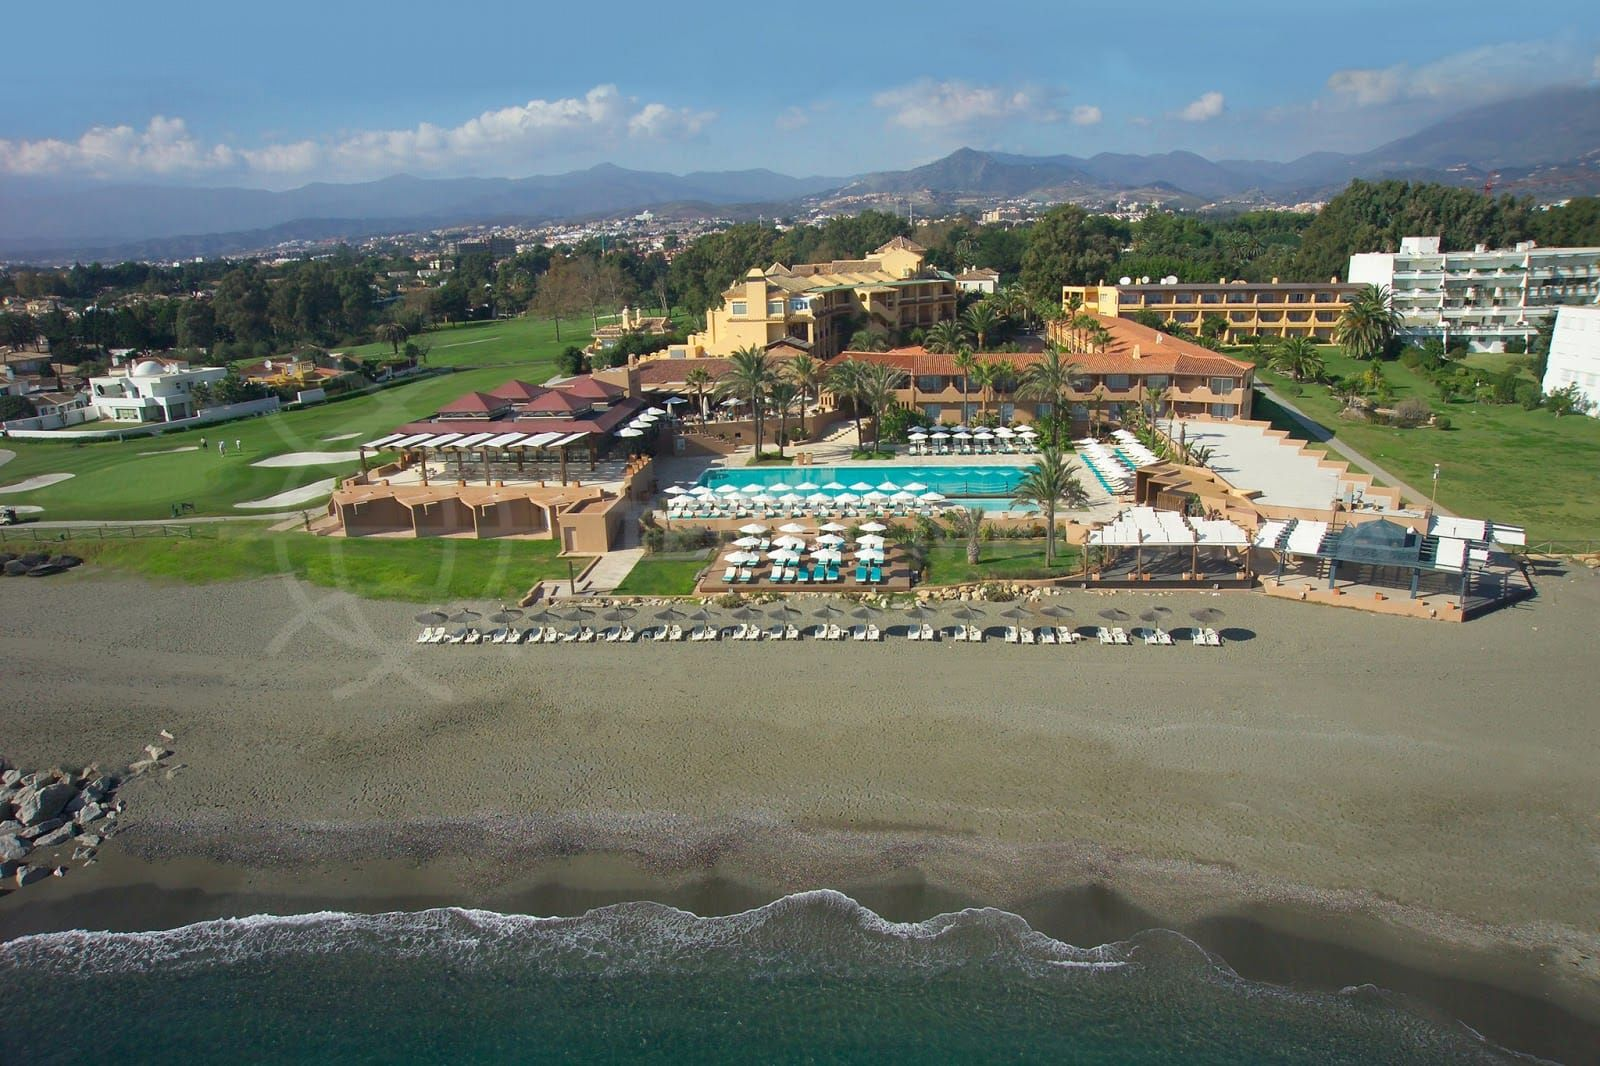 Real-estate investment trust buys Marbella's Hotel Guadalmina